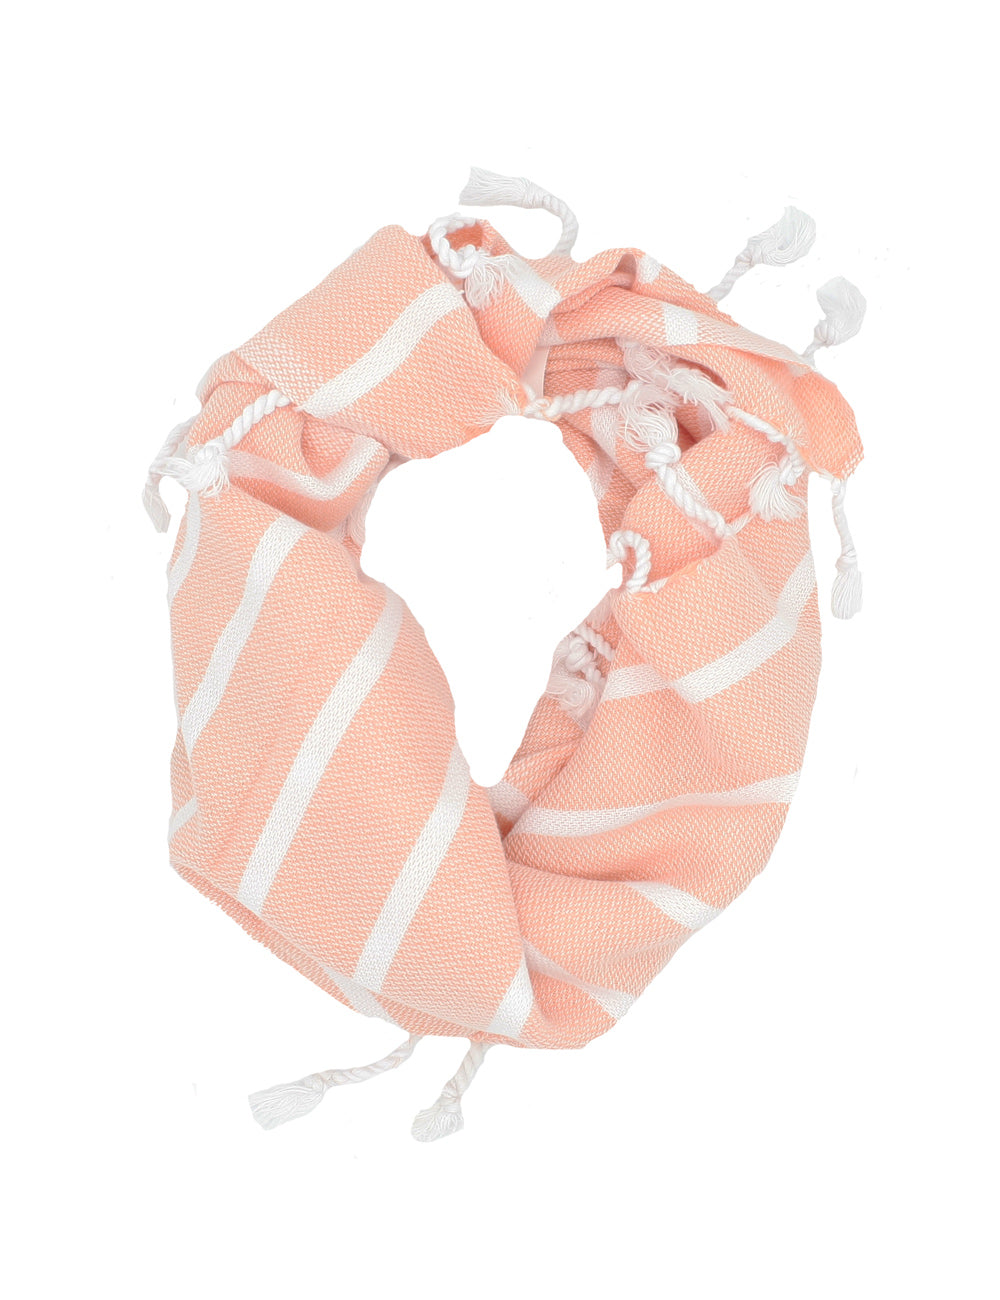 Twofer Towel | Peach & White